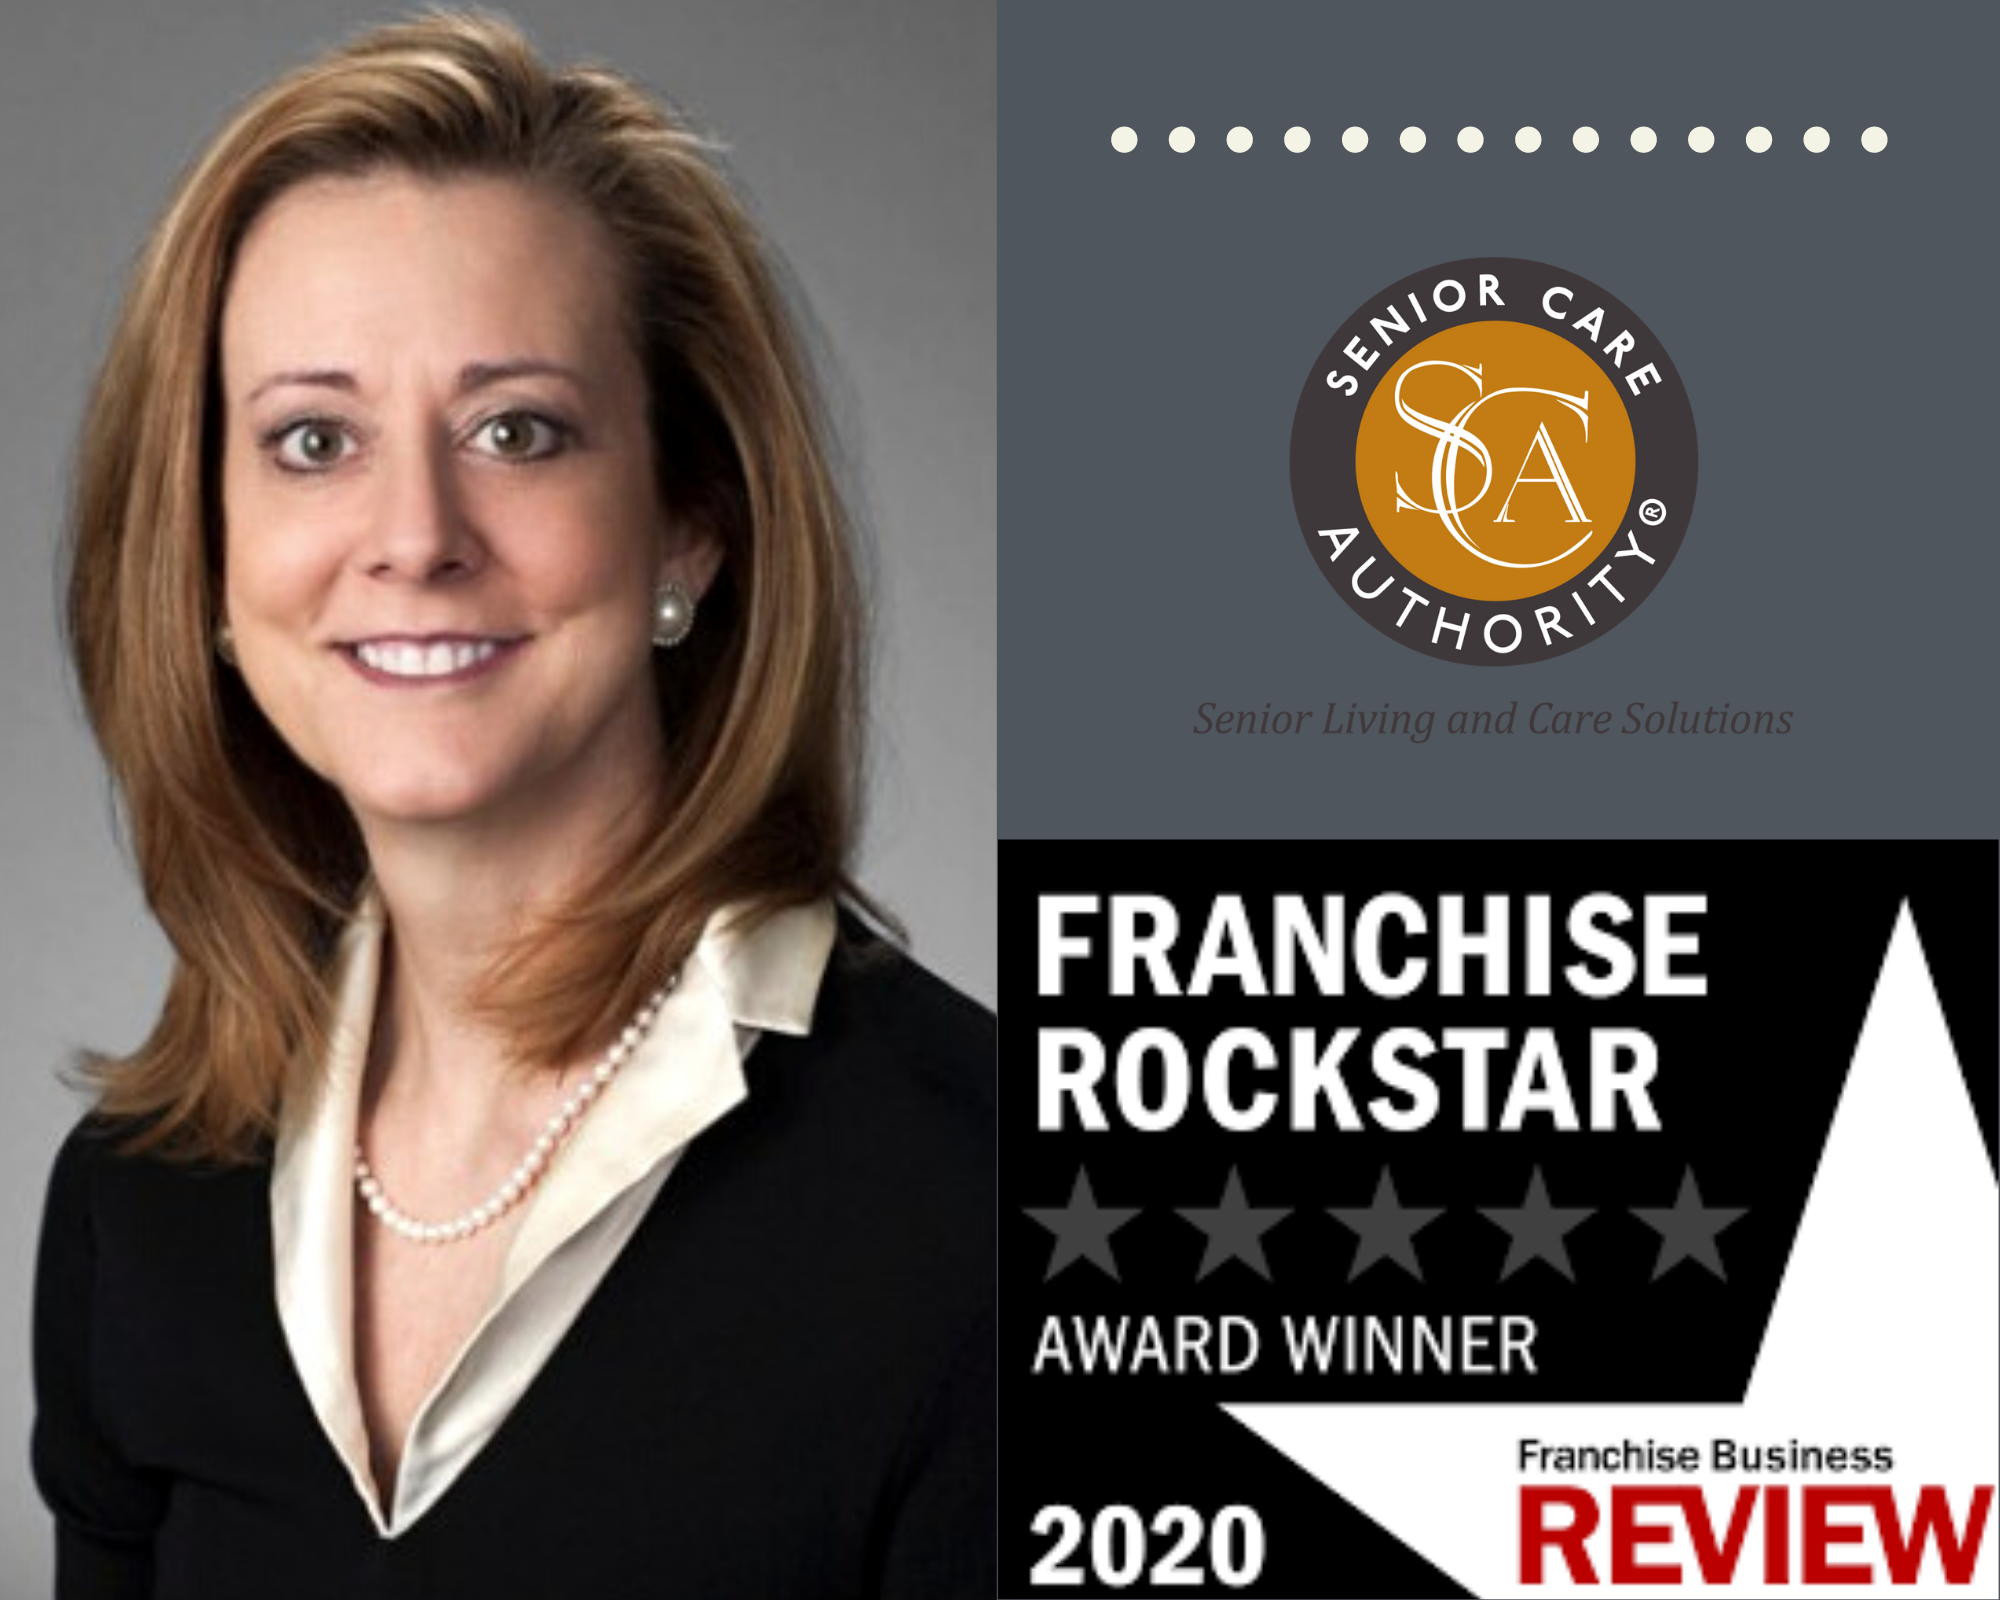 Senior Care Authority Franchisee Earns Rockstar Recognition From Franchise Business Review